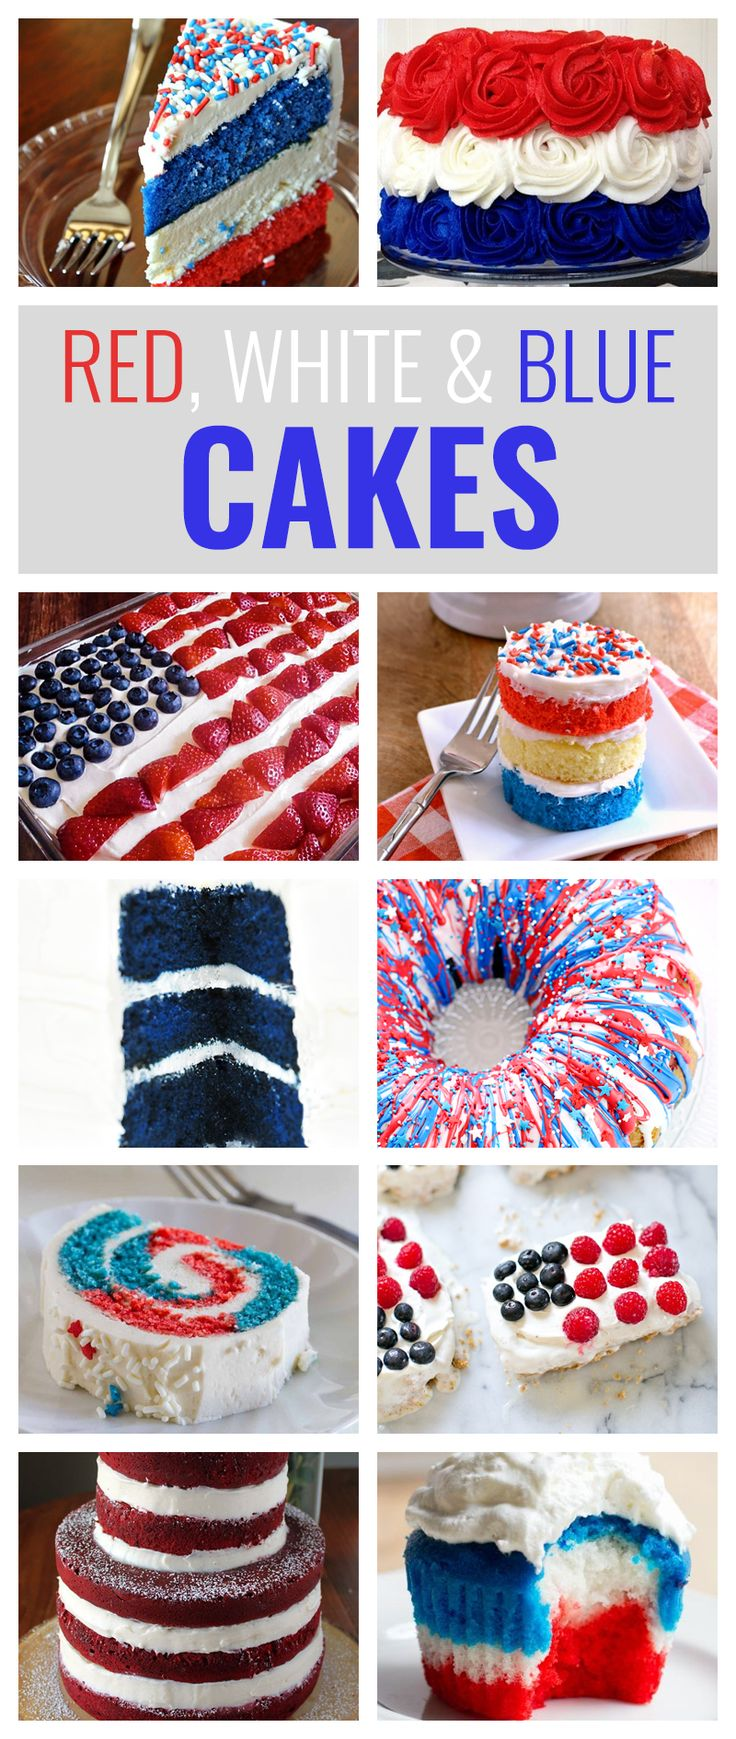 10 Red, White and Blue Cakes You'll Love to Make This Fourth of July  Cake is great. Themed cake is even better.  Summertime in America is all about patriotism with Independence Day. Celebrating the Fourth of July with a patriotic, red, white & blue cake